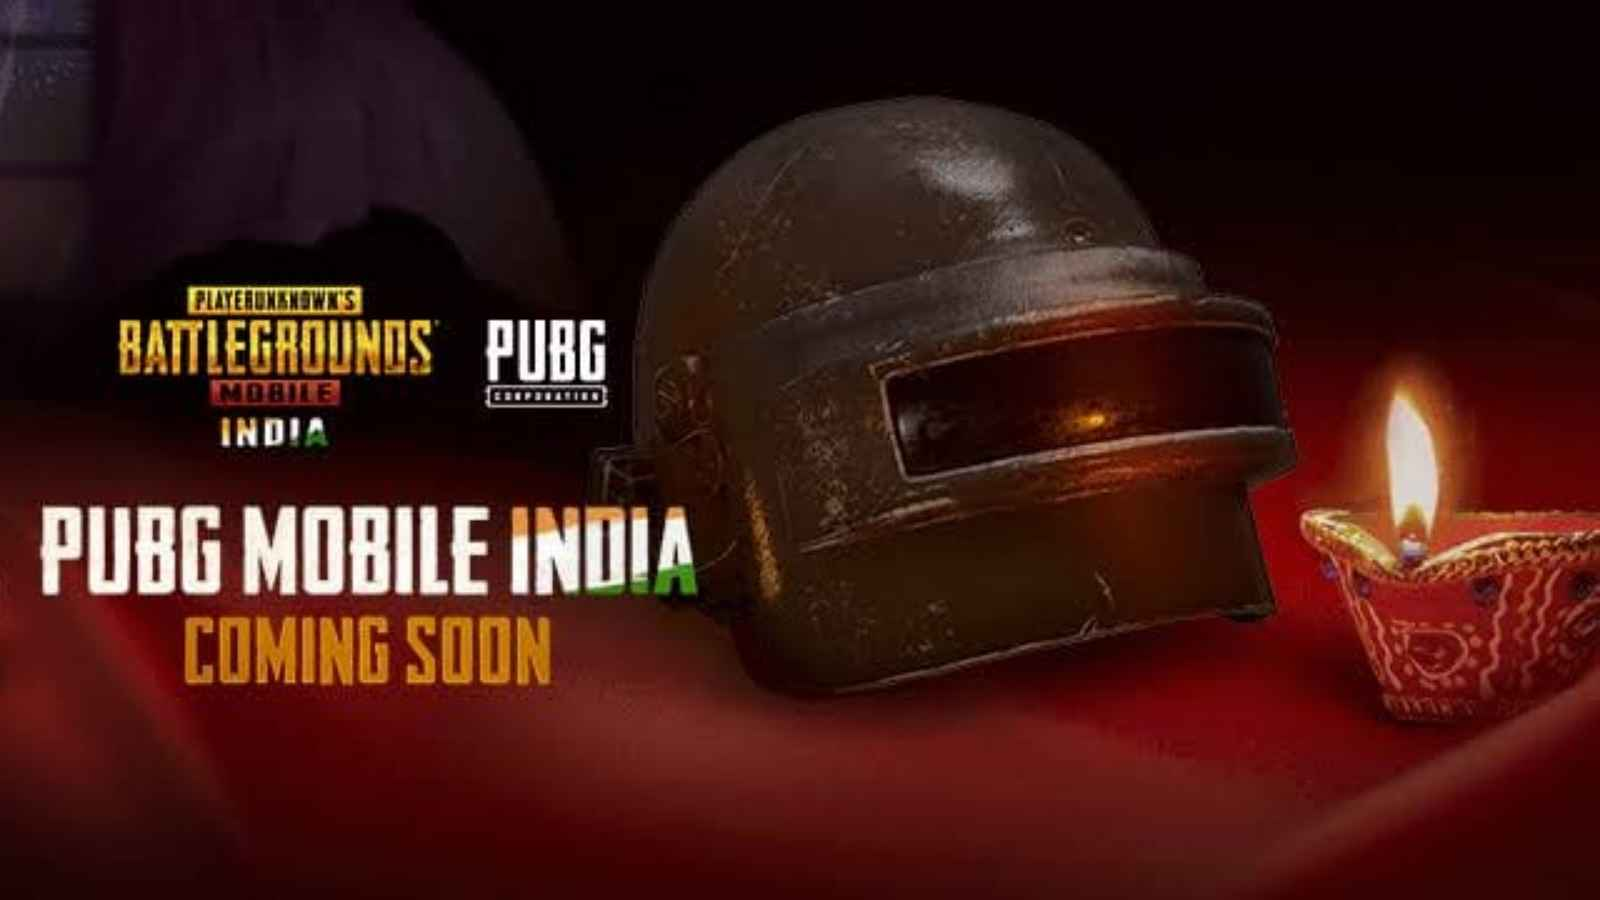 Battlegrounds Mobile India is the New PUBG Mobile for India: